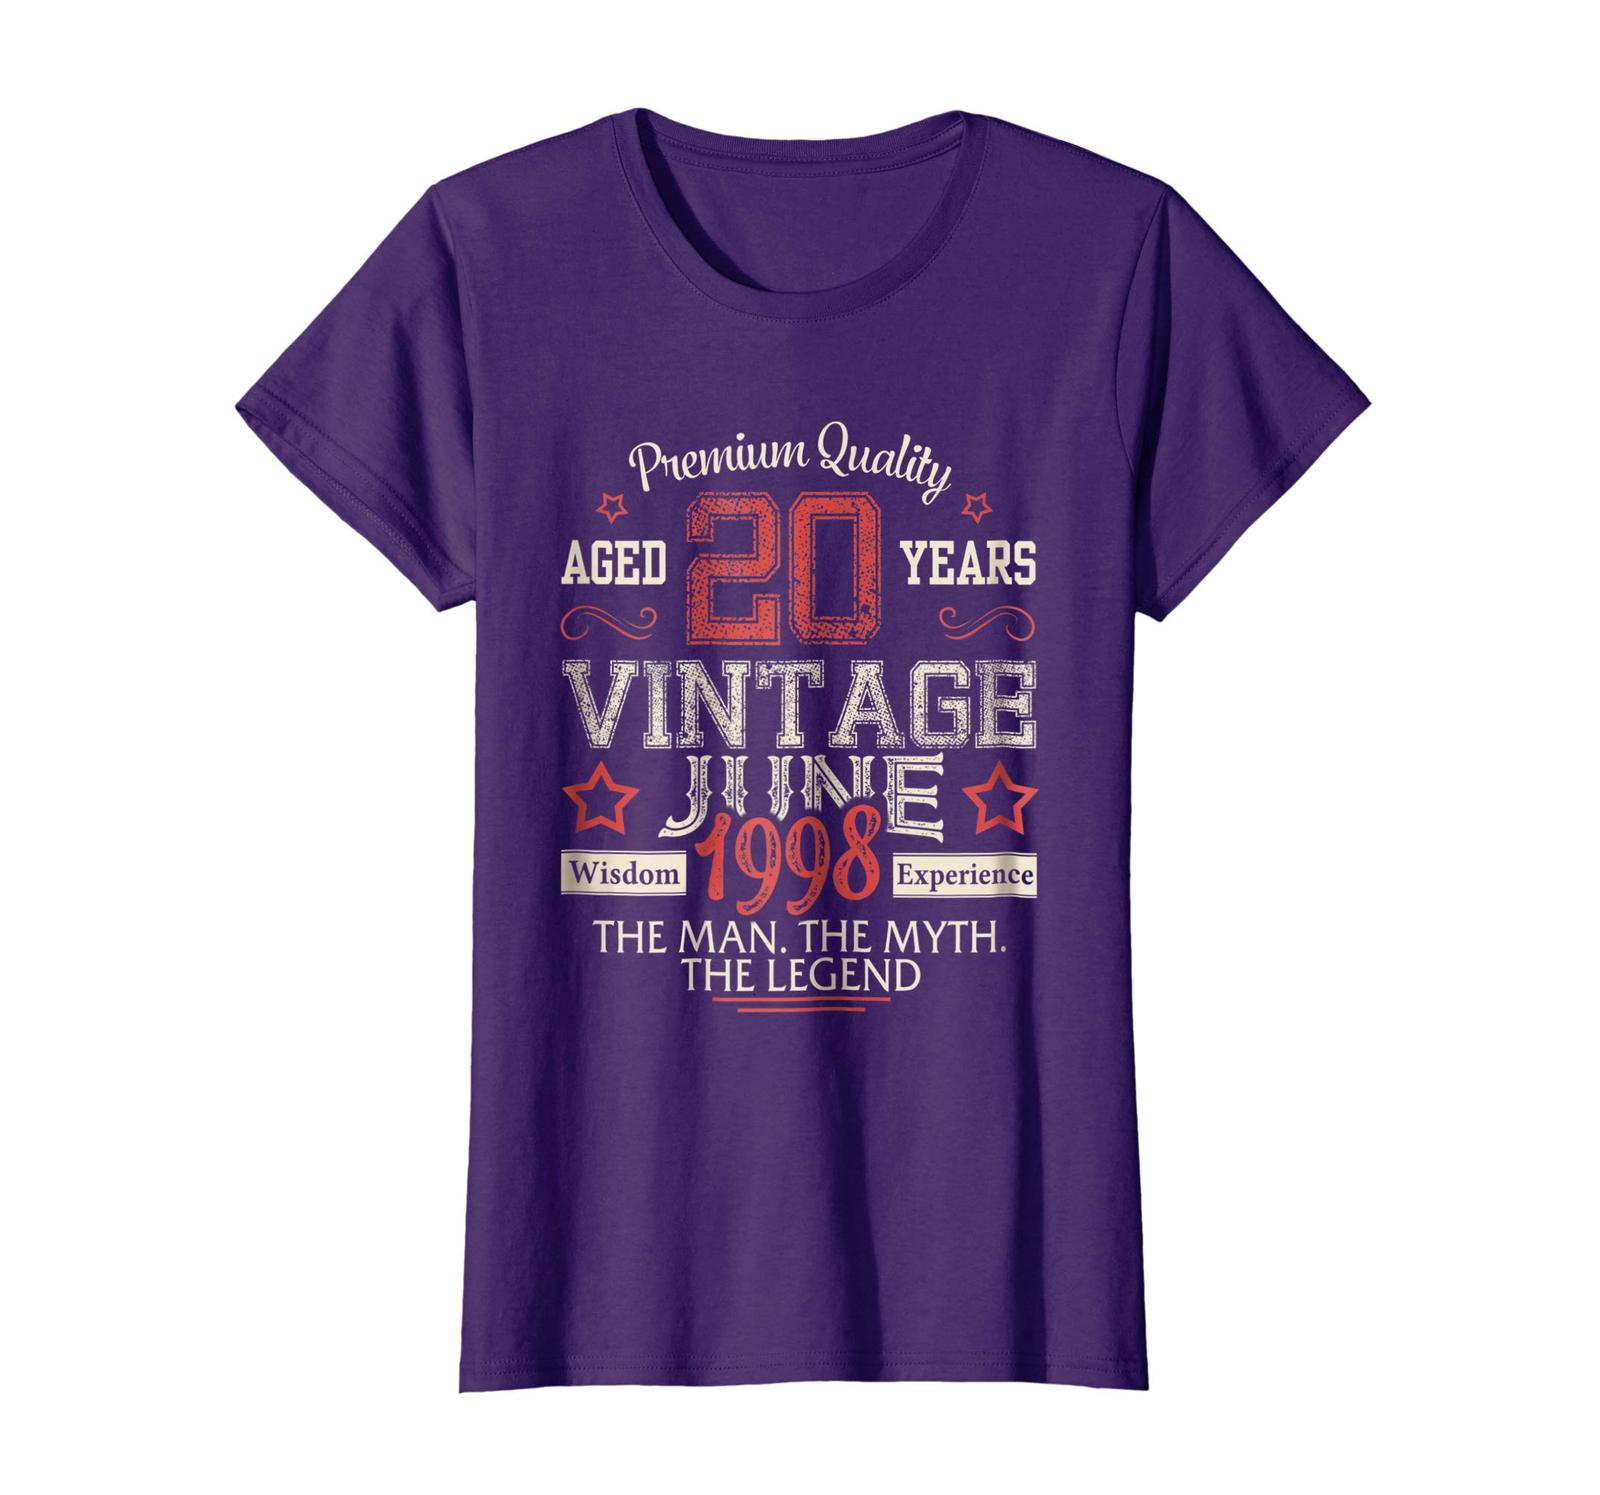 Uncle Shirts -   Vintage Legends Born In JUNE 1998 Aged 20 Years Old Being Wowen image 4